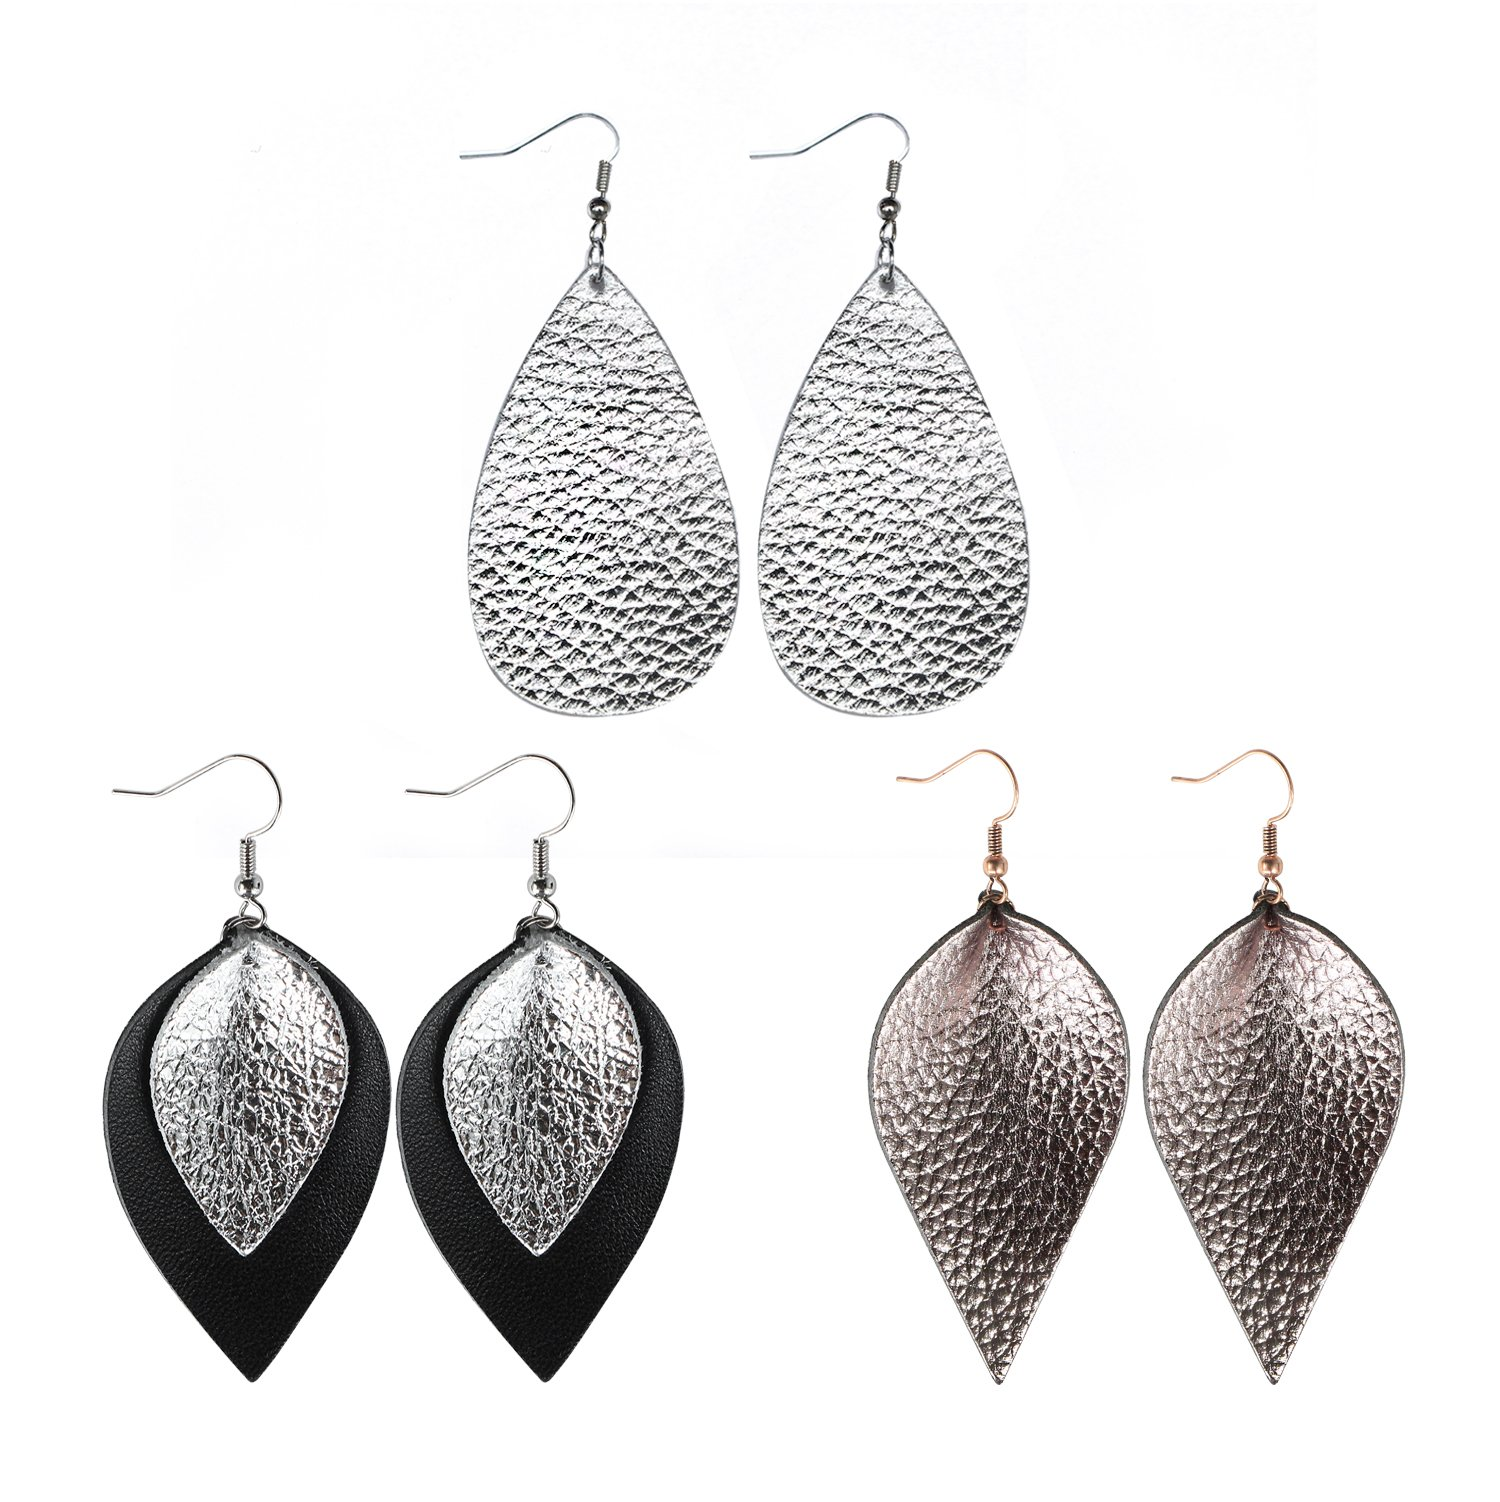 Genuine Leather Earrings 3 Pairs Silver Black Gunmetal Metallic Leather Teardrop Dangle Earrings Set for Women Girls